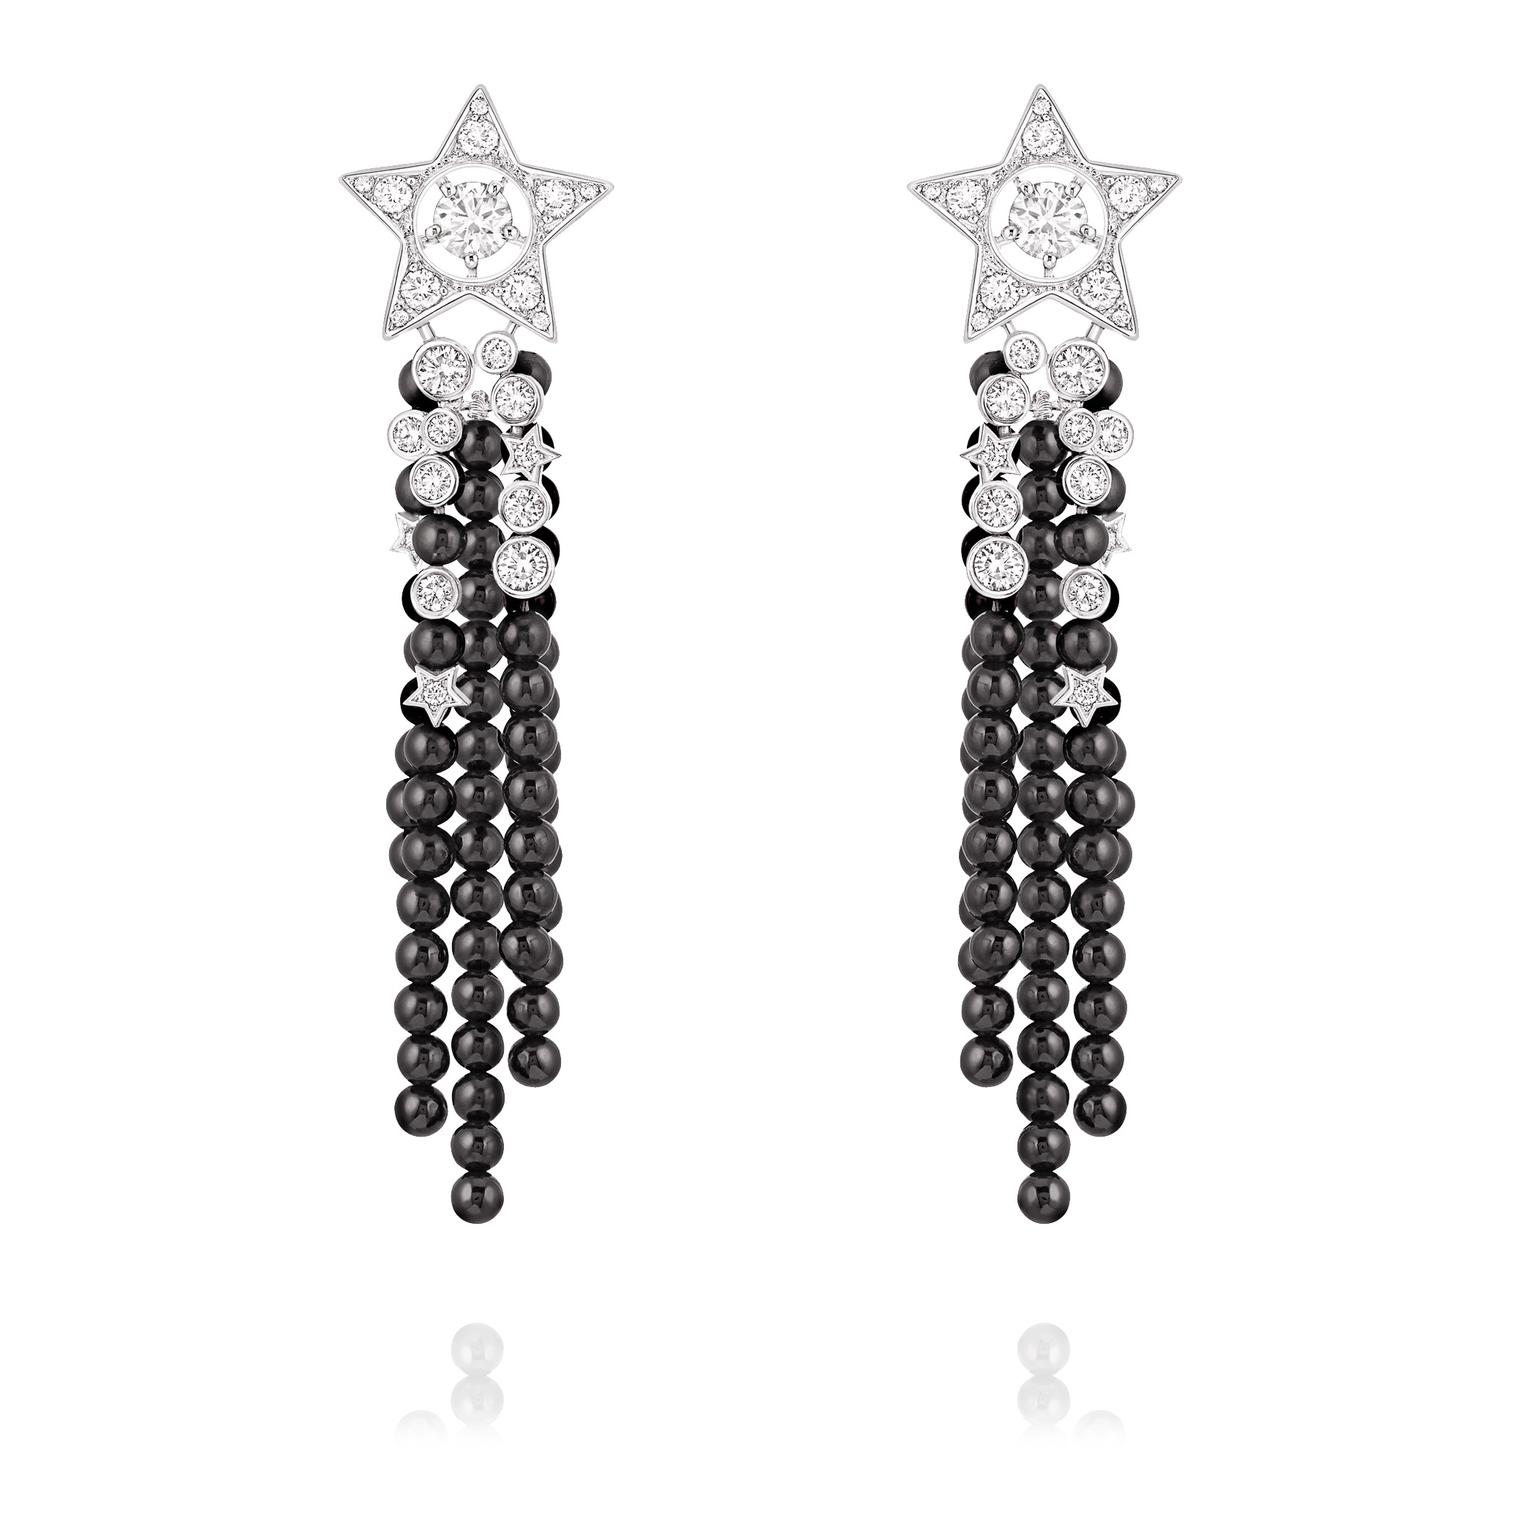 Chanel-Comete-Earrings-Zoom